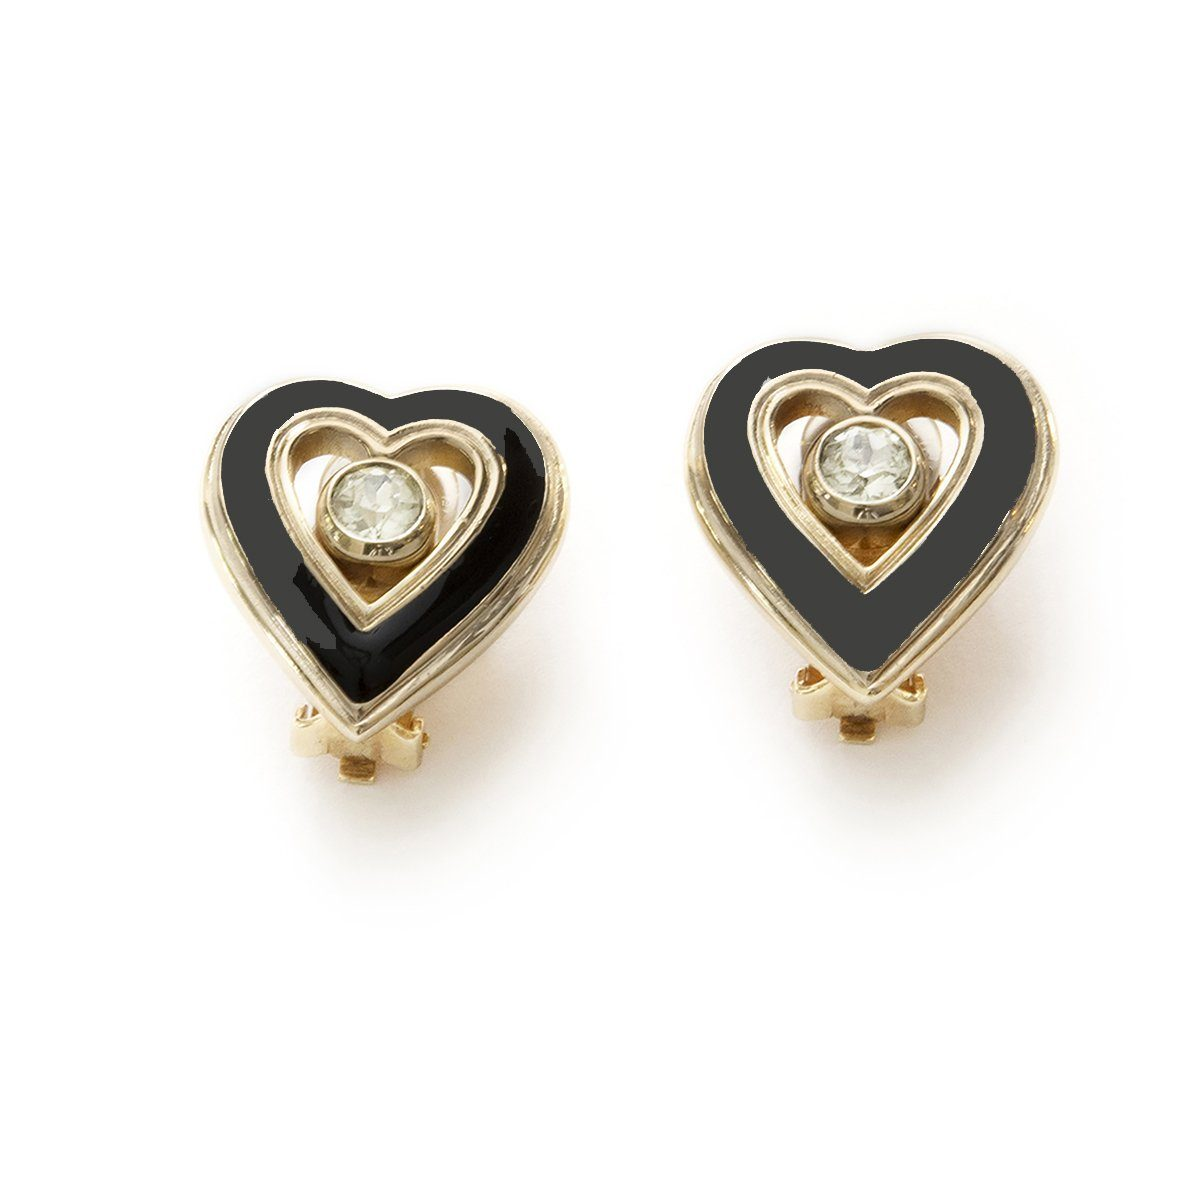 Vintage Christian Dior Heart Jewelry Set, Crystals, Black Enamel & Gold Plate 3